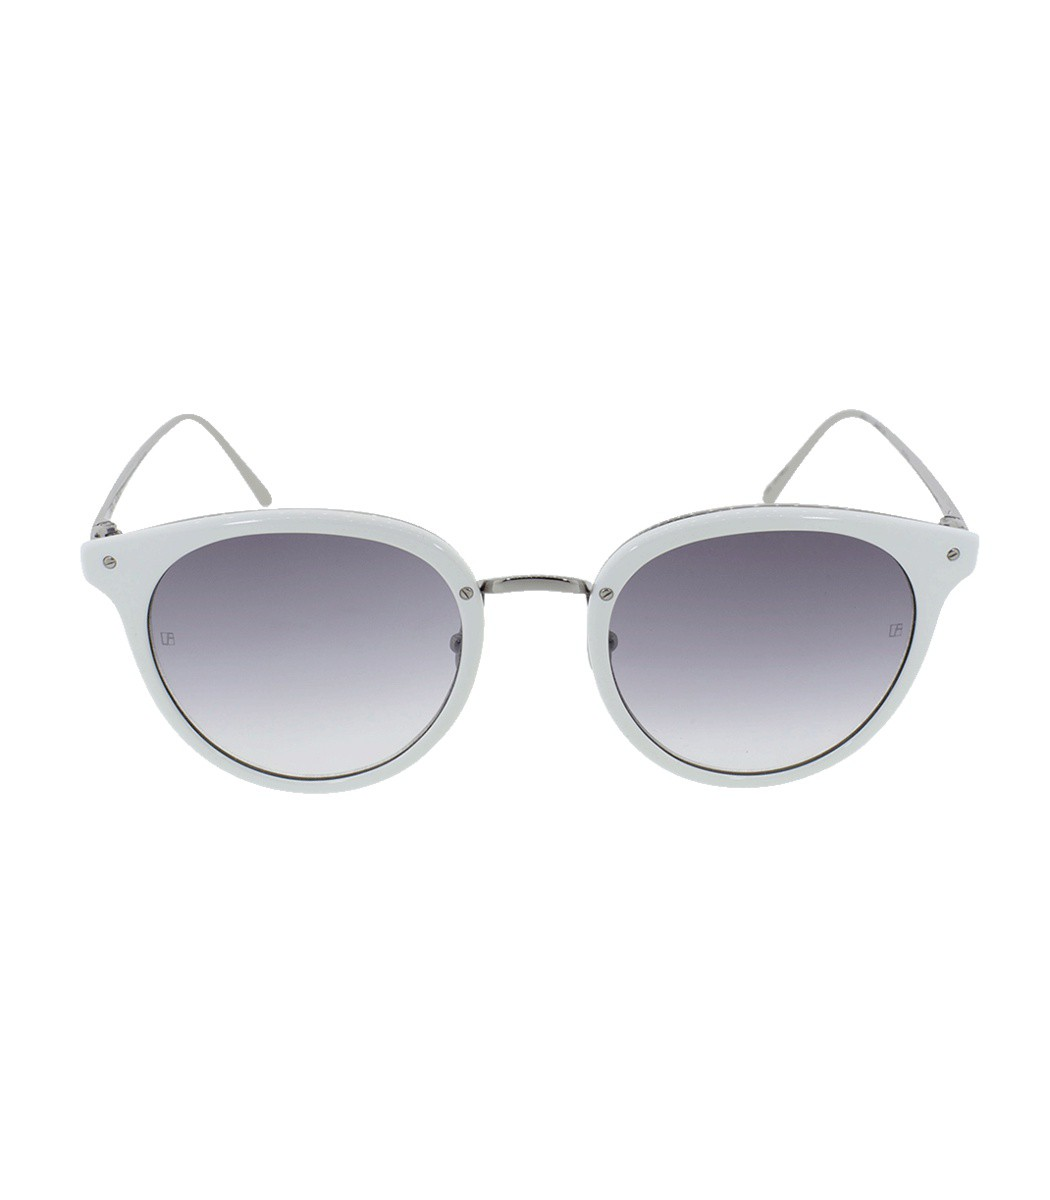 Linda Farrow Oval Sunglasses In White/Grey